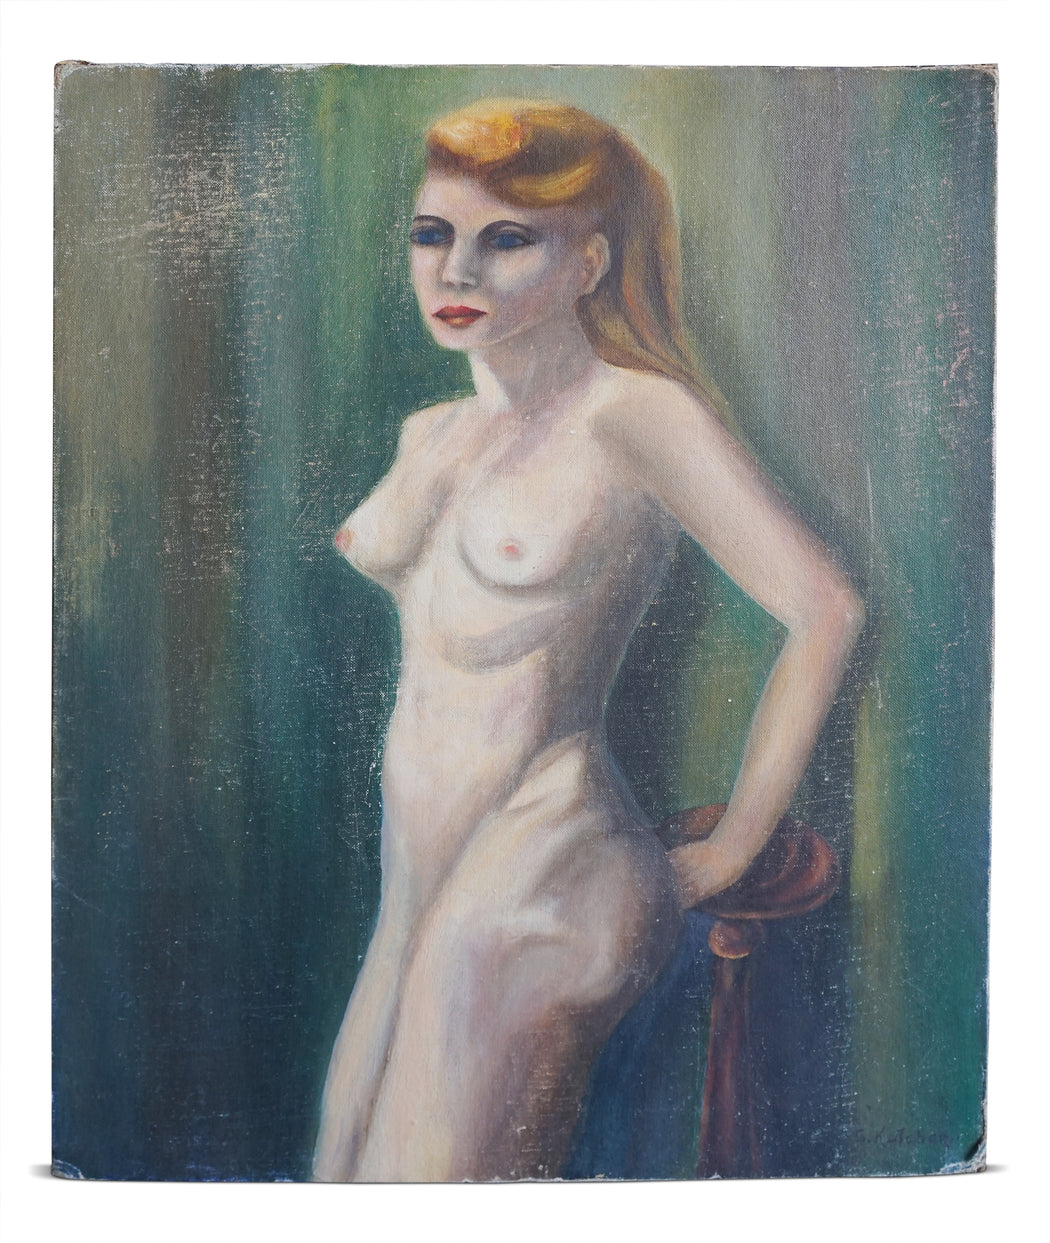 Vintage Painting of Nude Lady